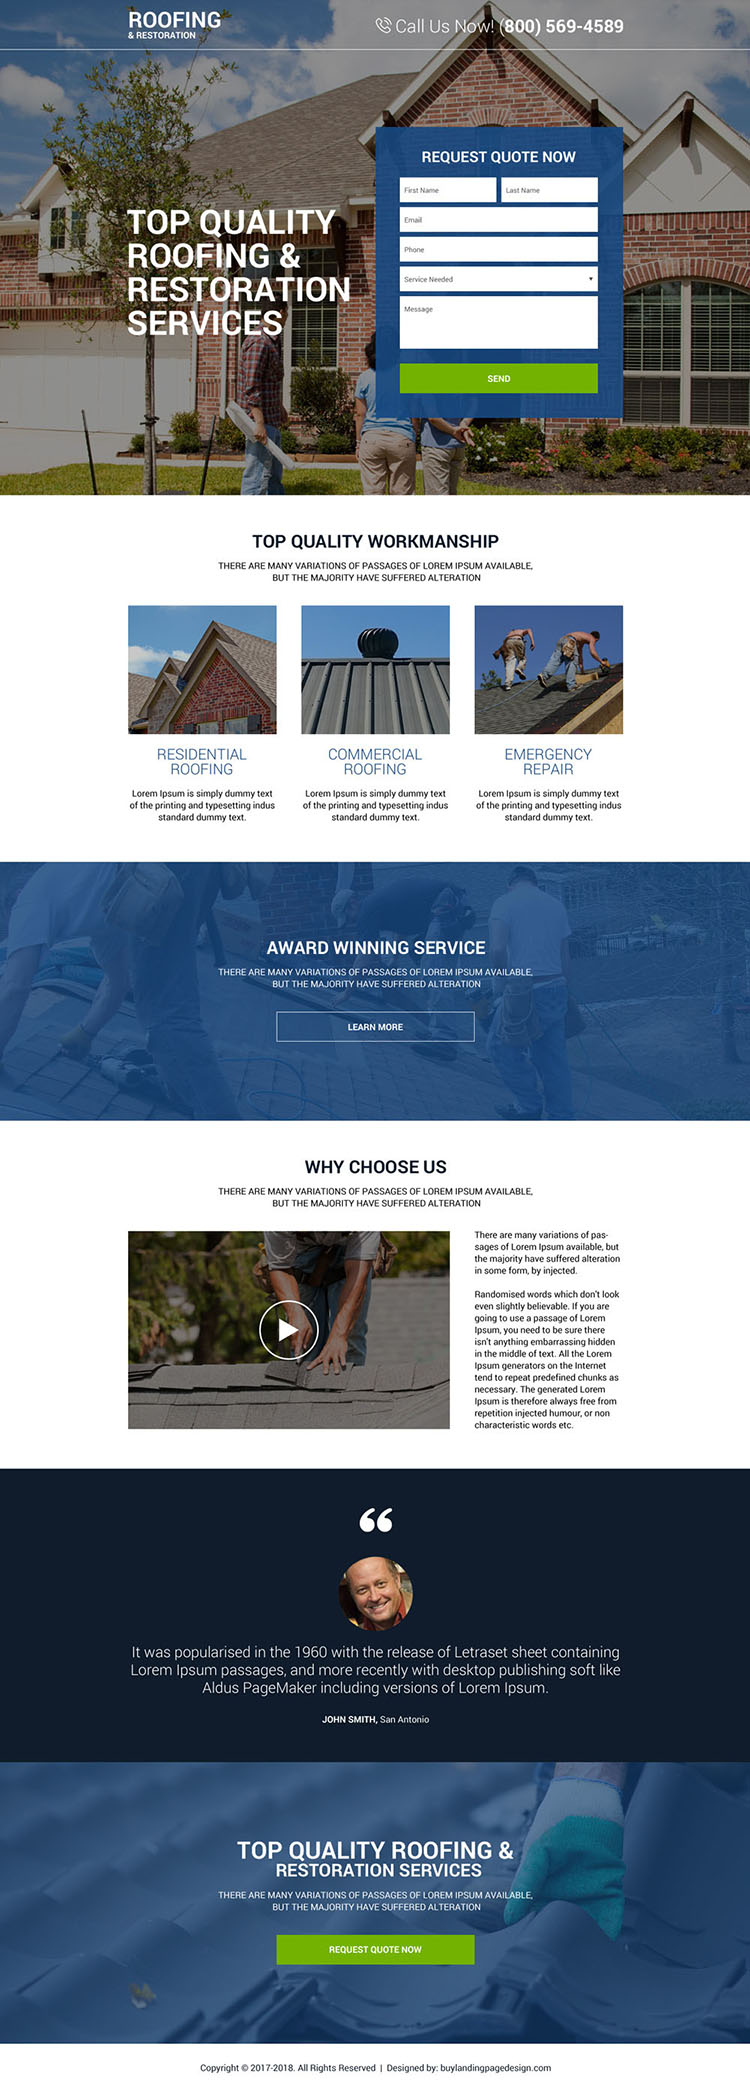 top quality roofing and restoration services premium landing page design